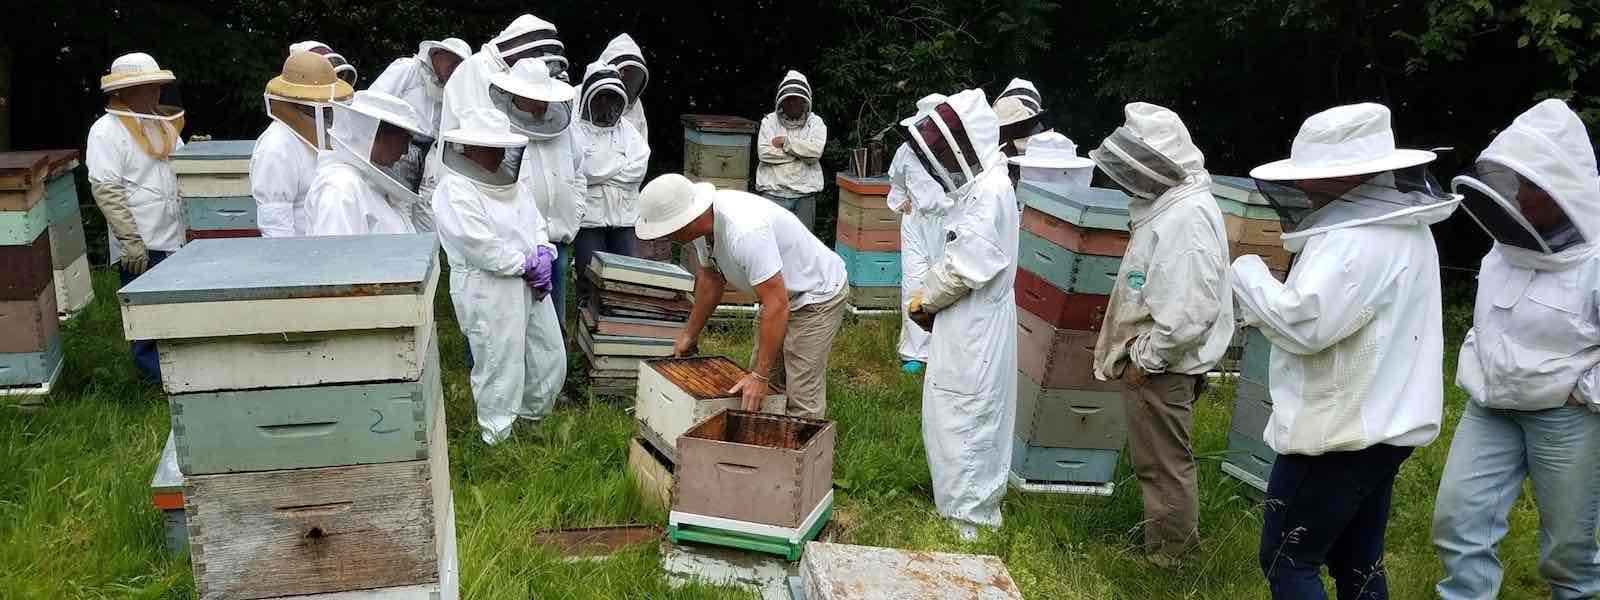 Interested in becoming a beekeeper?